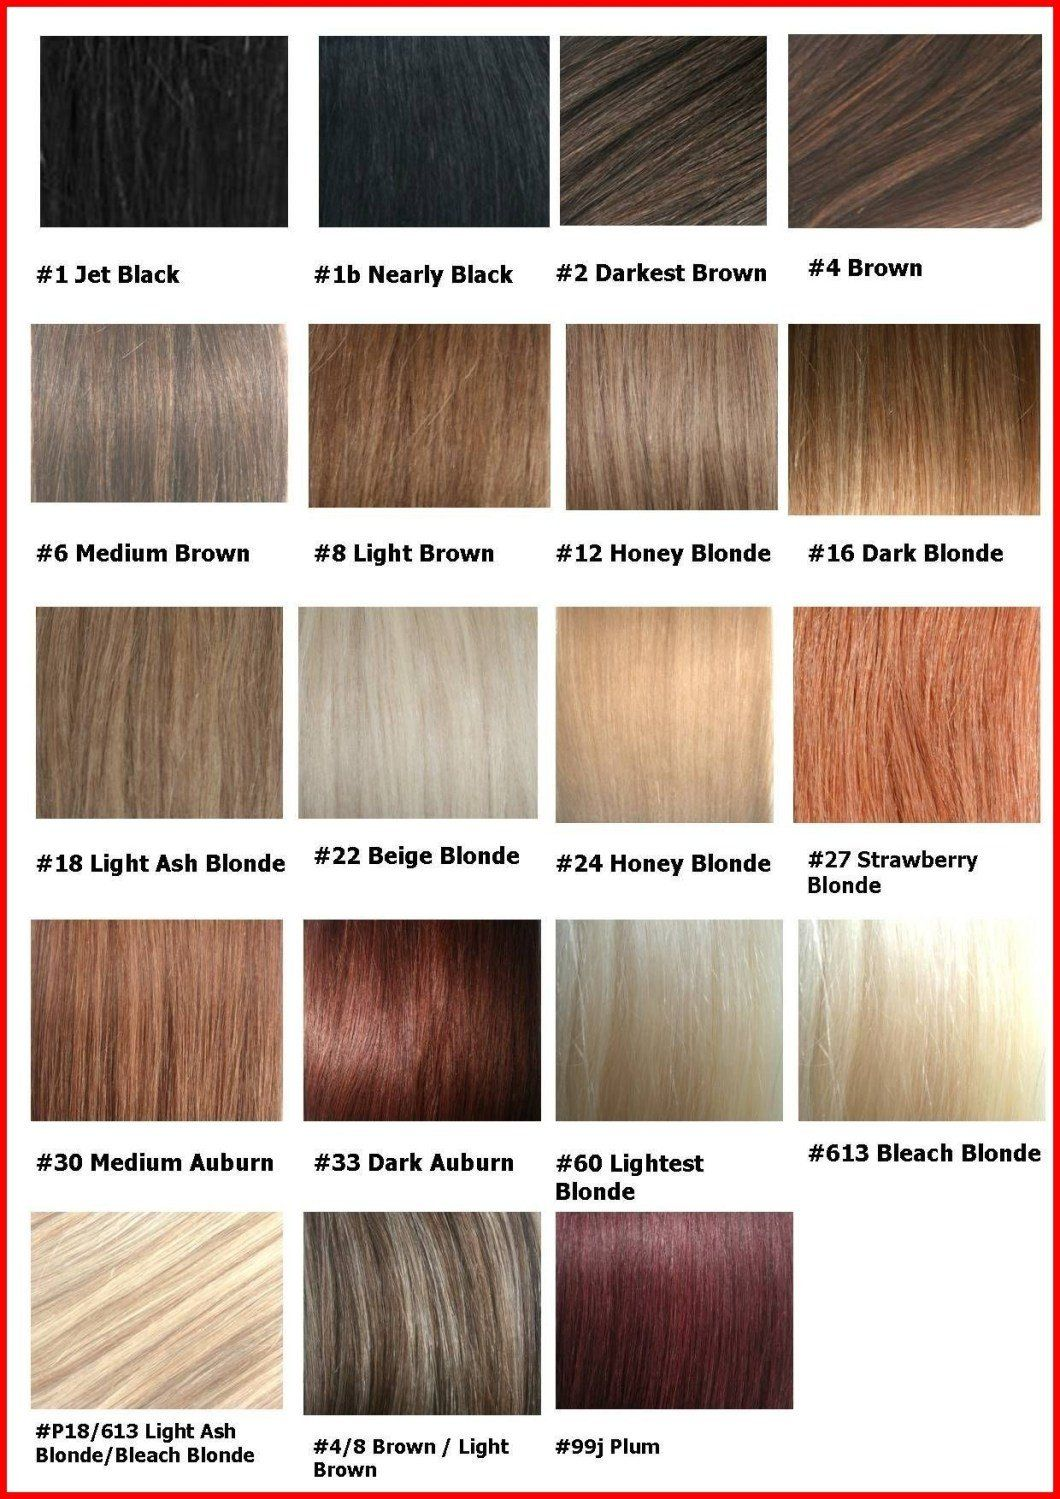 Aveda Hair Coloring Reviews Luxury 33 Rigorous Aveda Color Chart For Hair Color In 2020 Hair Color Chart Blonde Hair Color Chart Blonde Hair Color